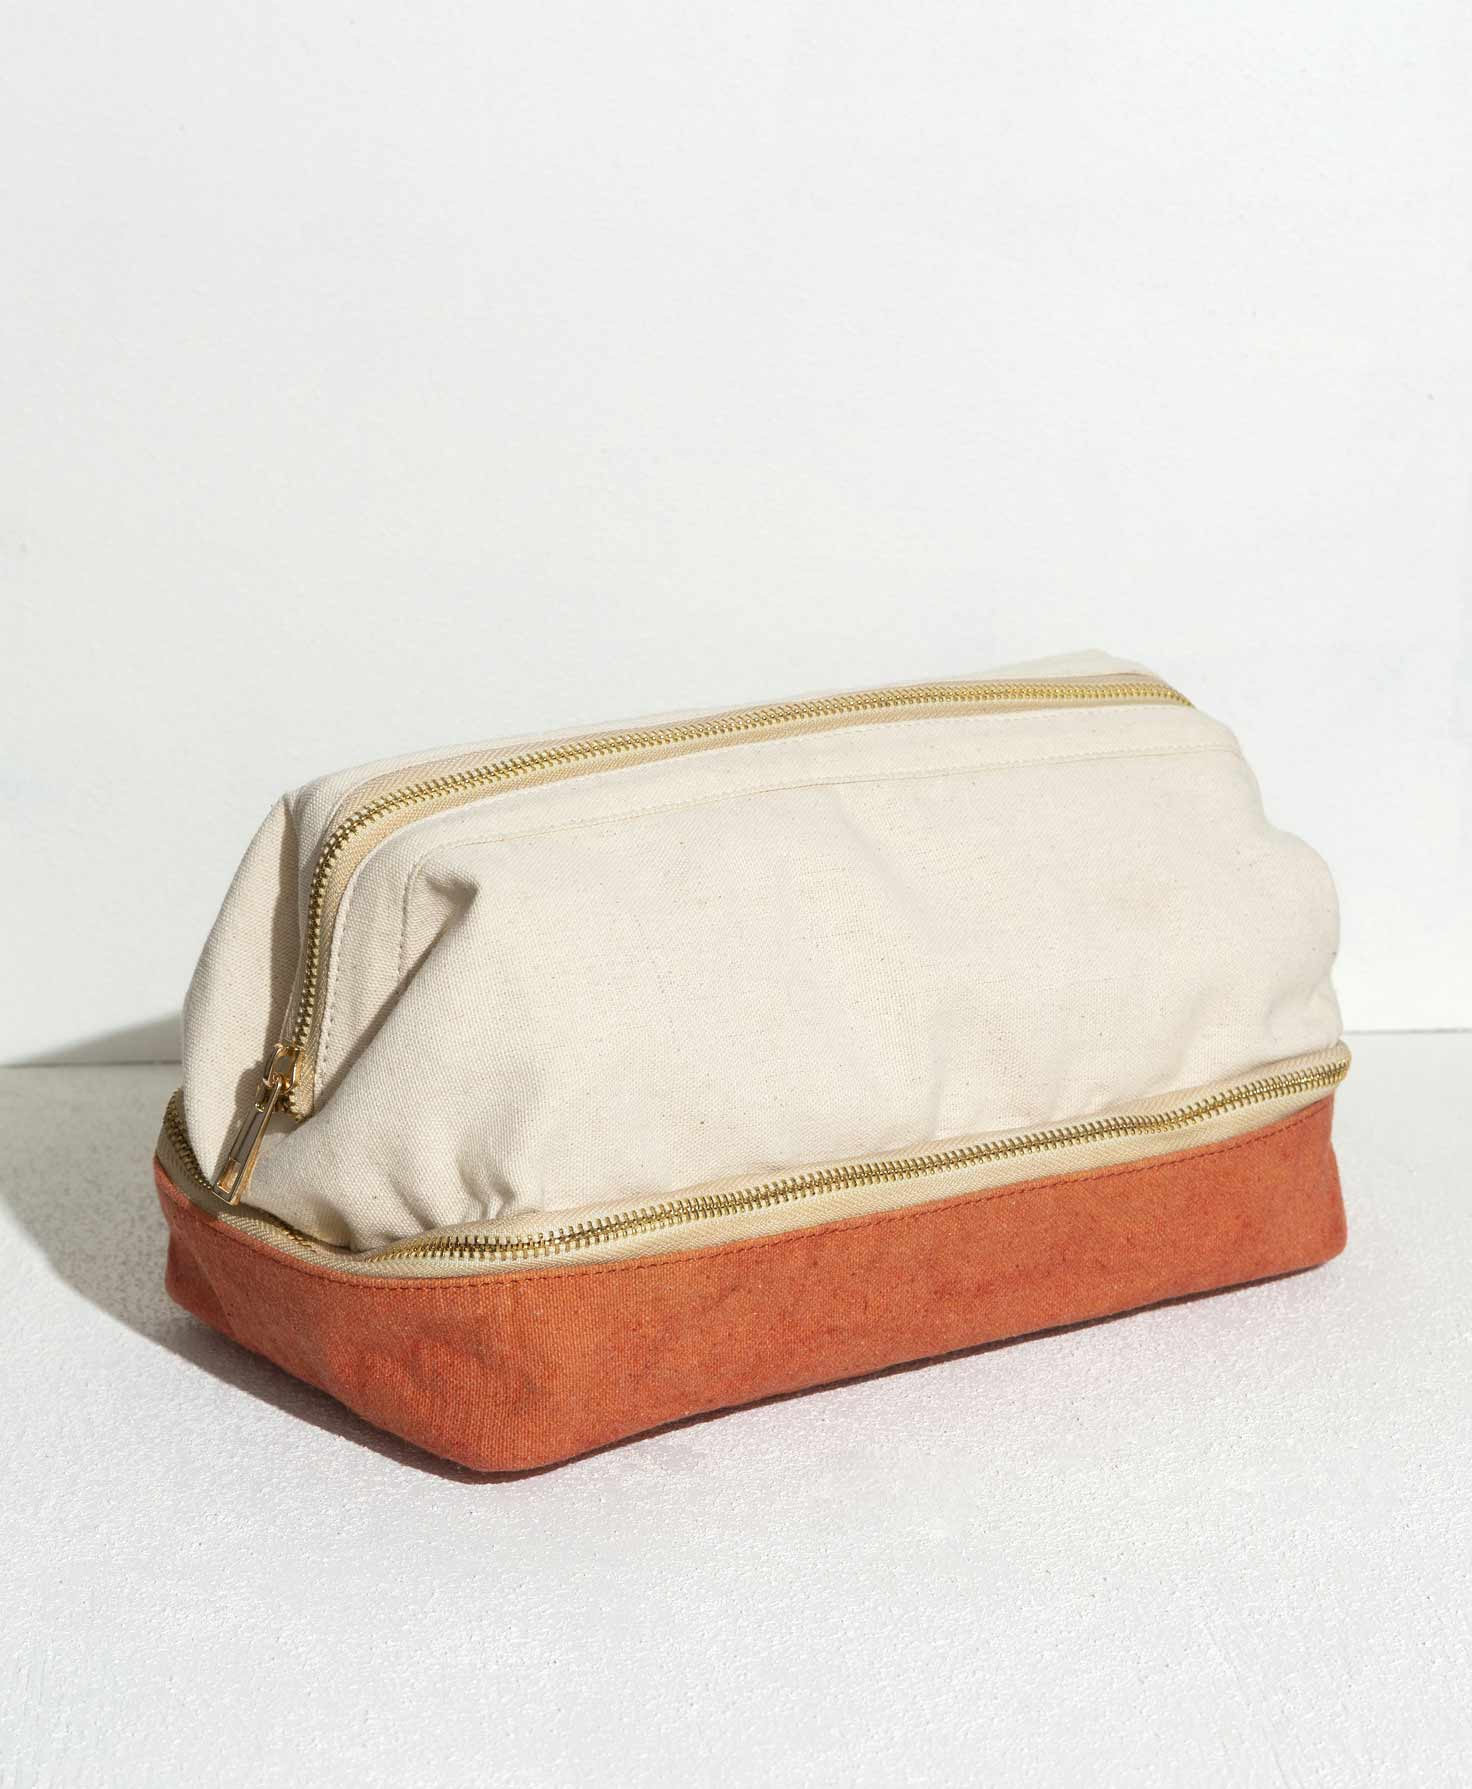 The Voyage Dopp Kit rests on a white surface. It is made of cotton canvas and features two distinct compartments. The top section is the larger of the two. It is made of cream canvas and is accessed via a brass zipper that stretches across the entire top of the bag. All along the bottom of this compartment is another brass zipper that wraps sideways around the entire bag. When unzipped, this zipper provides access to the bottom compartment, which is made of canvas in a burnt sienna shade. This compartment is flatter than the top compartment and provides additional storage.